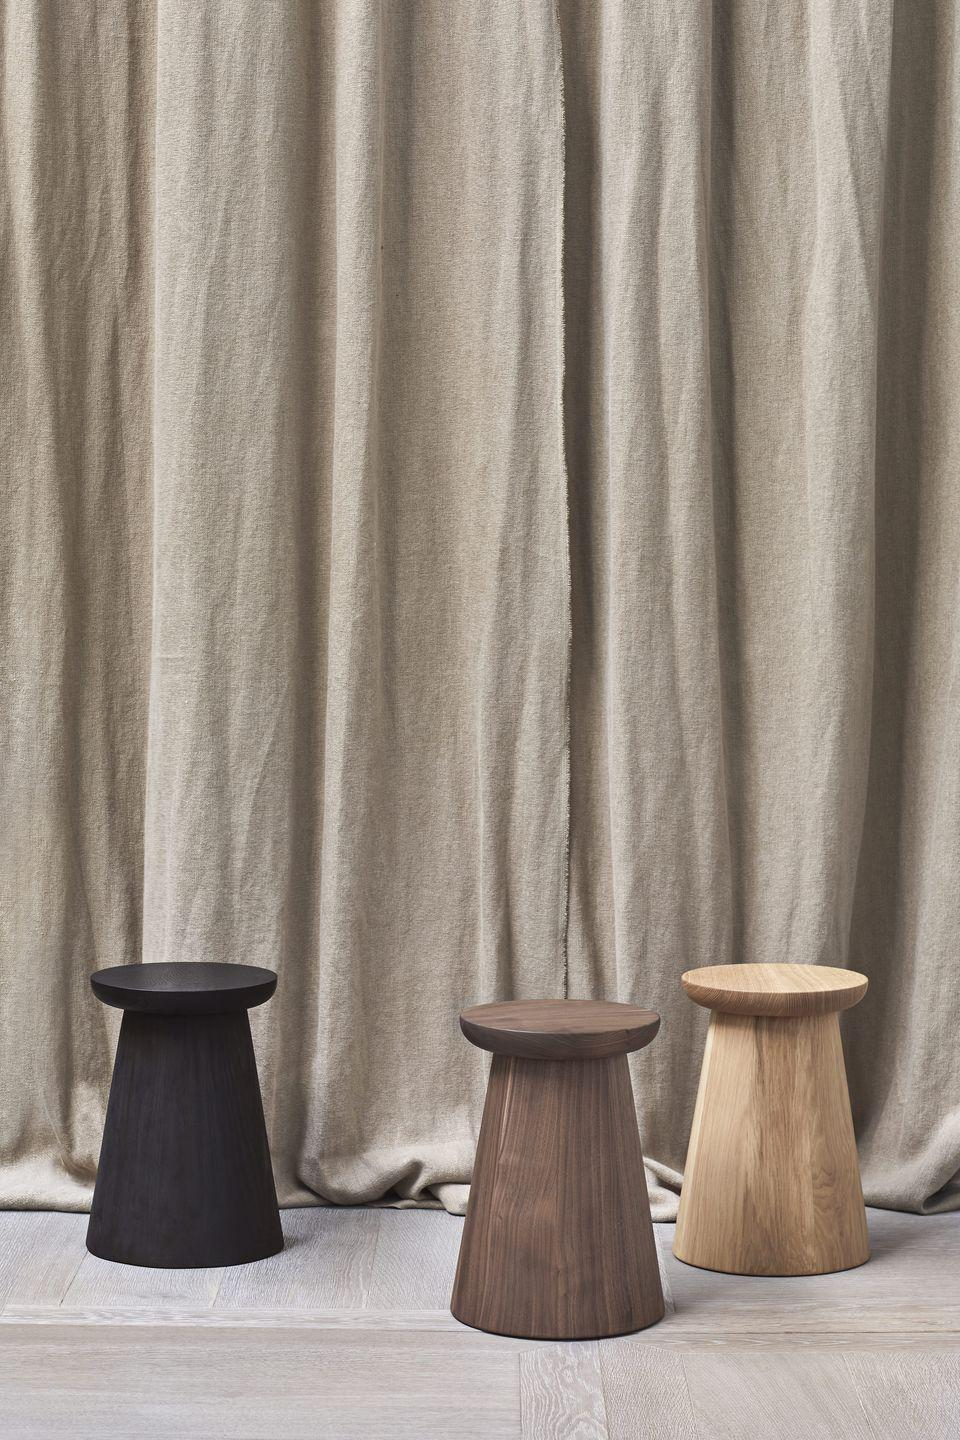 """<p>Made using traditional carpentry techniques, London-based designer Edward Collinson's handcrafted stools come in an ebonised oak, walnut or natural oak finish. Gently curved undersides add to their tactile appeal, while flat tops mean they can double up as side tables. £710 each, <a href=""""https://www.edwardcollinson.co.uk"""" rel=""""nofollow noopener"""" target=""""_blank"""" data-ylk=""""slk:edwardcollinson.co.uk"""" class=""""link rapid-noclick-resp"""">edwardcollinson.co.uk</a></p>"""